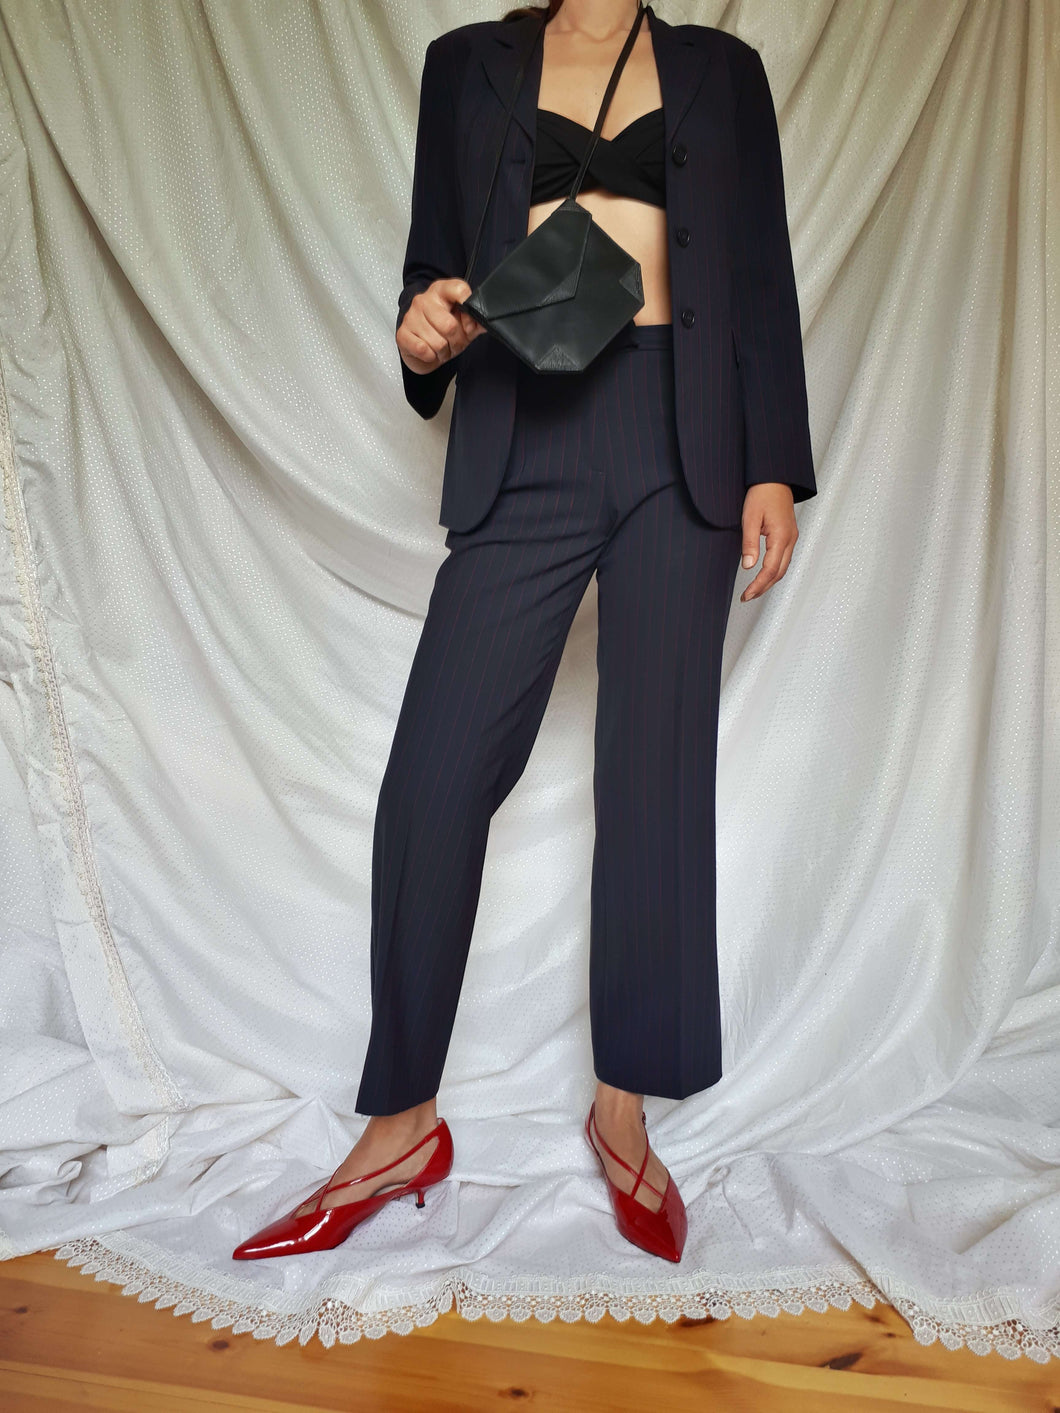 3 PIECE SISLEY SUIT | pinstripe | blazer-skirt-pants | XS/S:[Past out]:[vintage clothes]